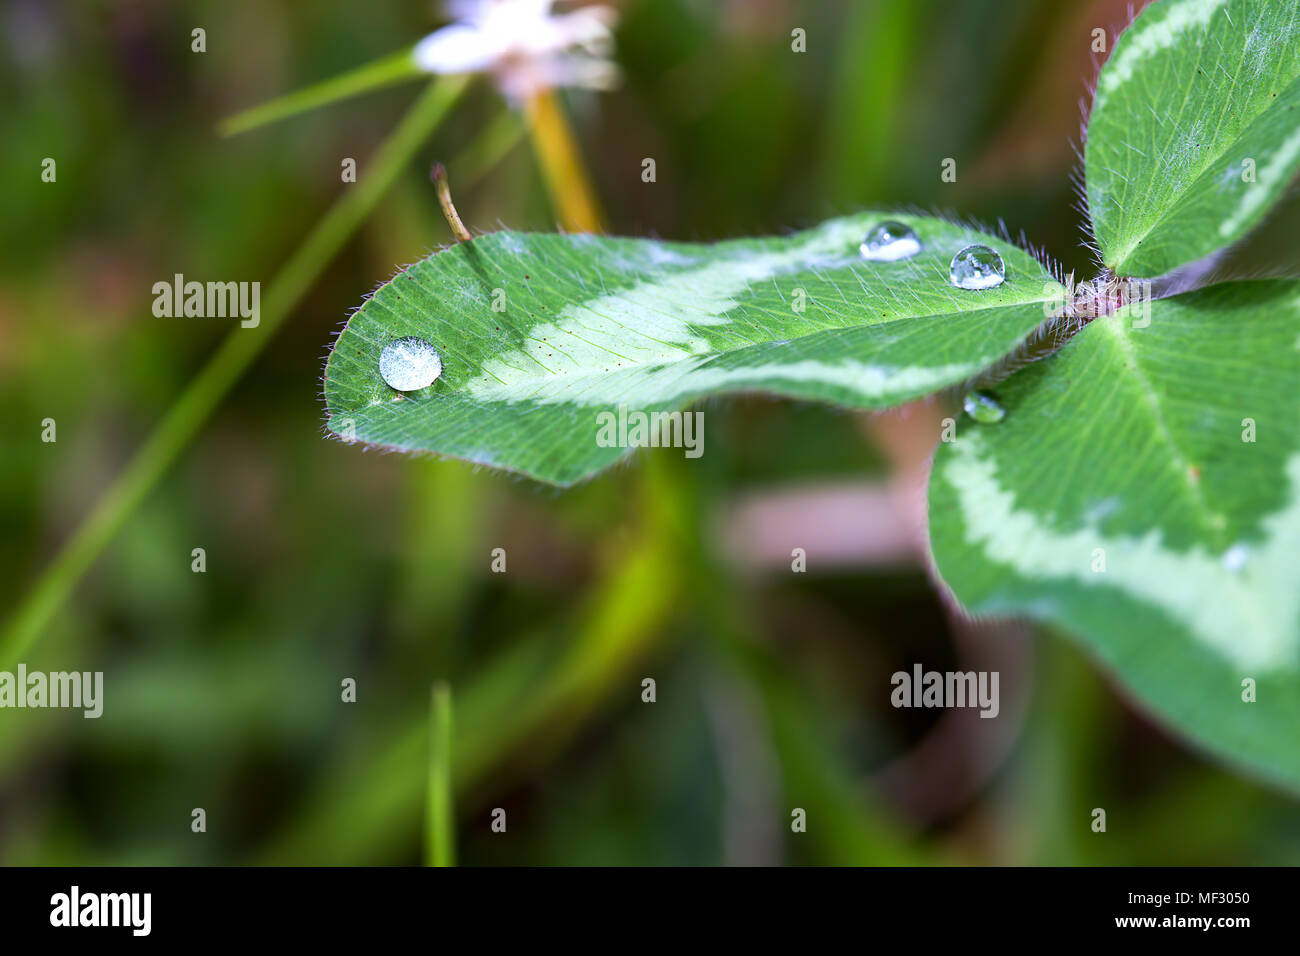 Macrophotography of some dew drops over a clover leaf early in the morning. Stock Photo